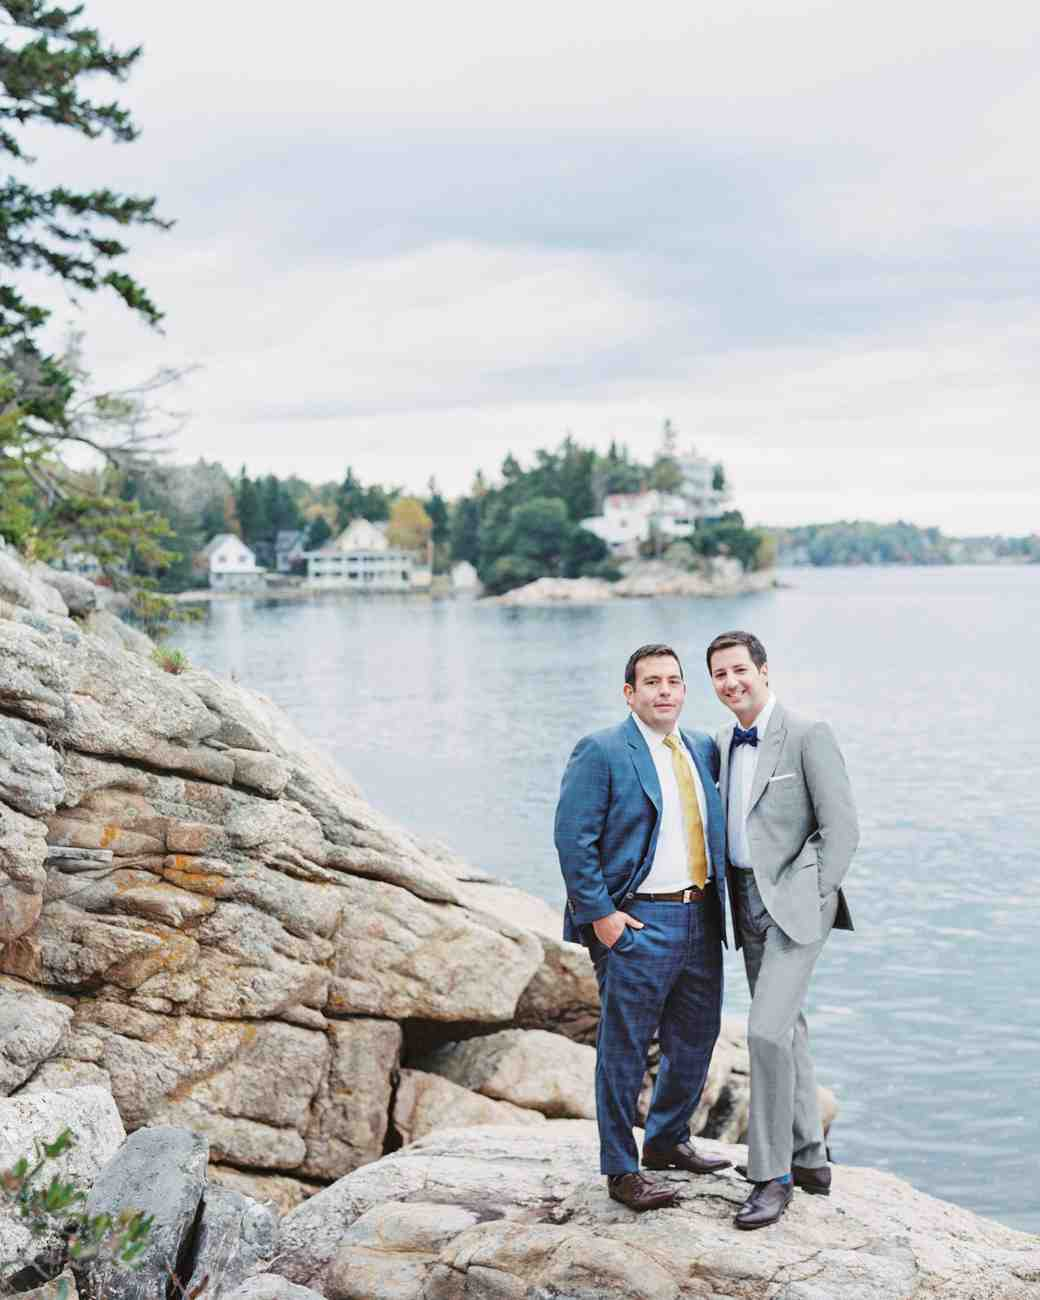 josh-matt-real-wedding-portrait-by-lake-location.jpg